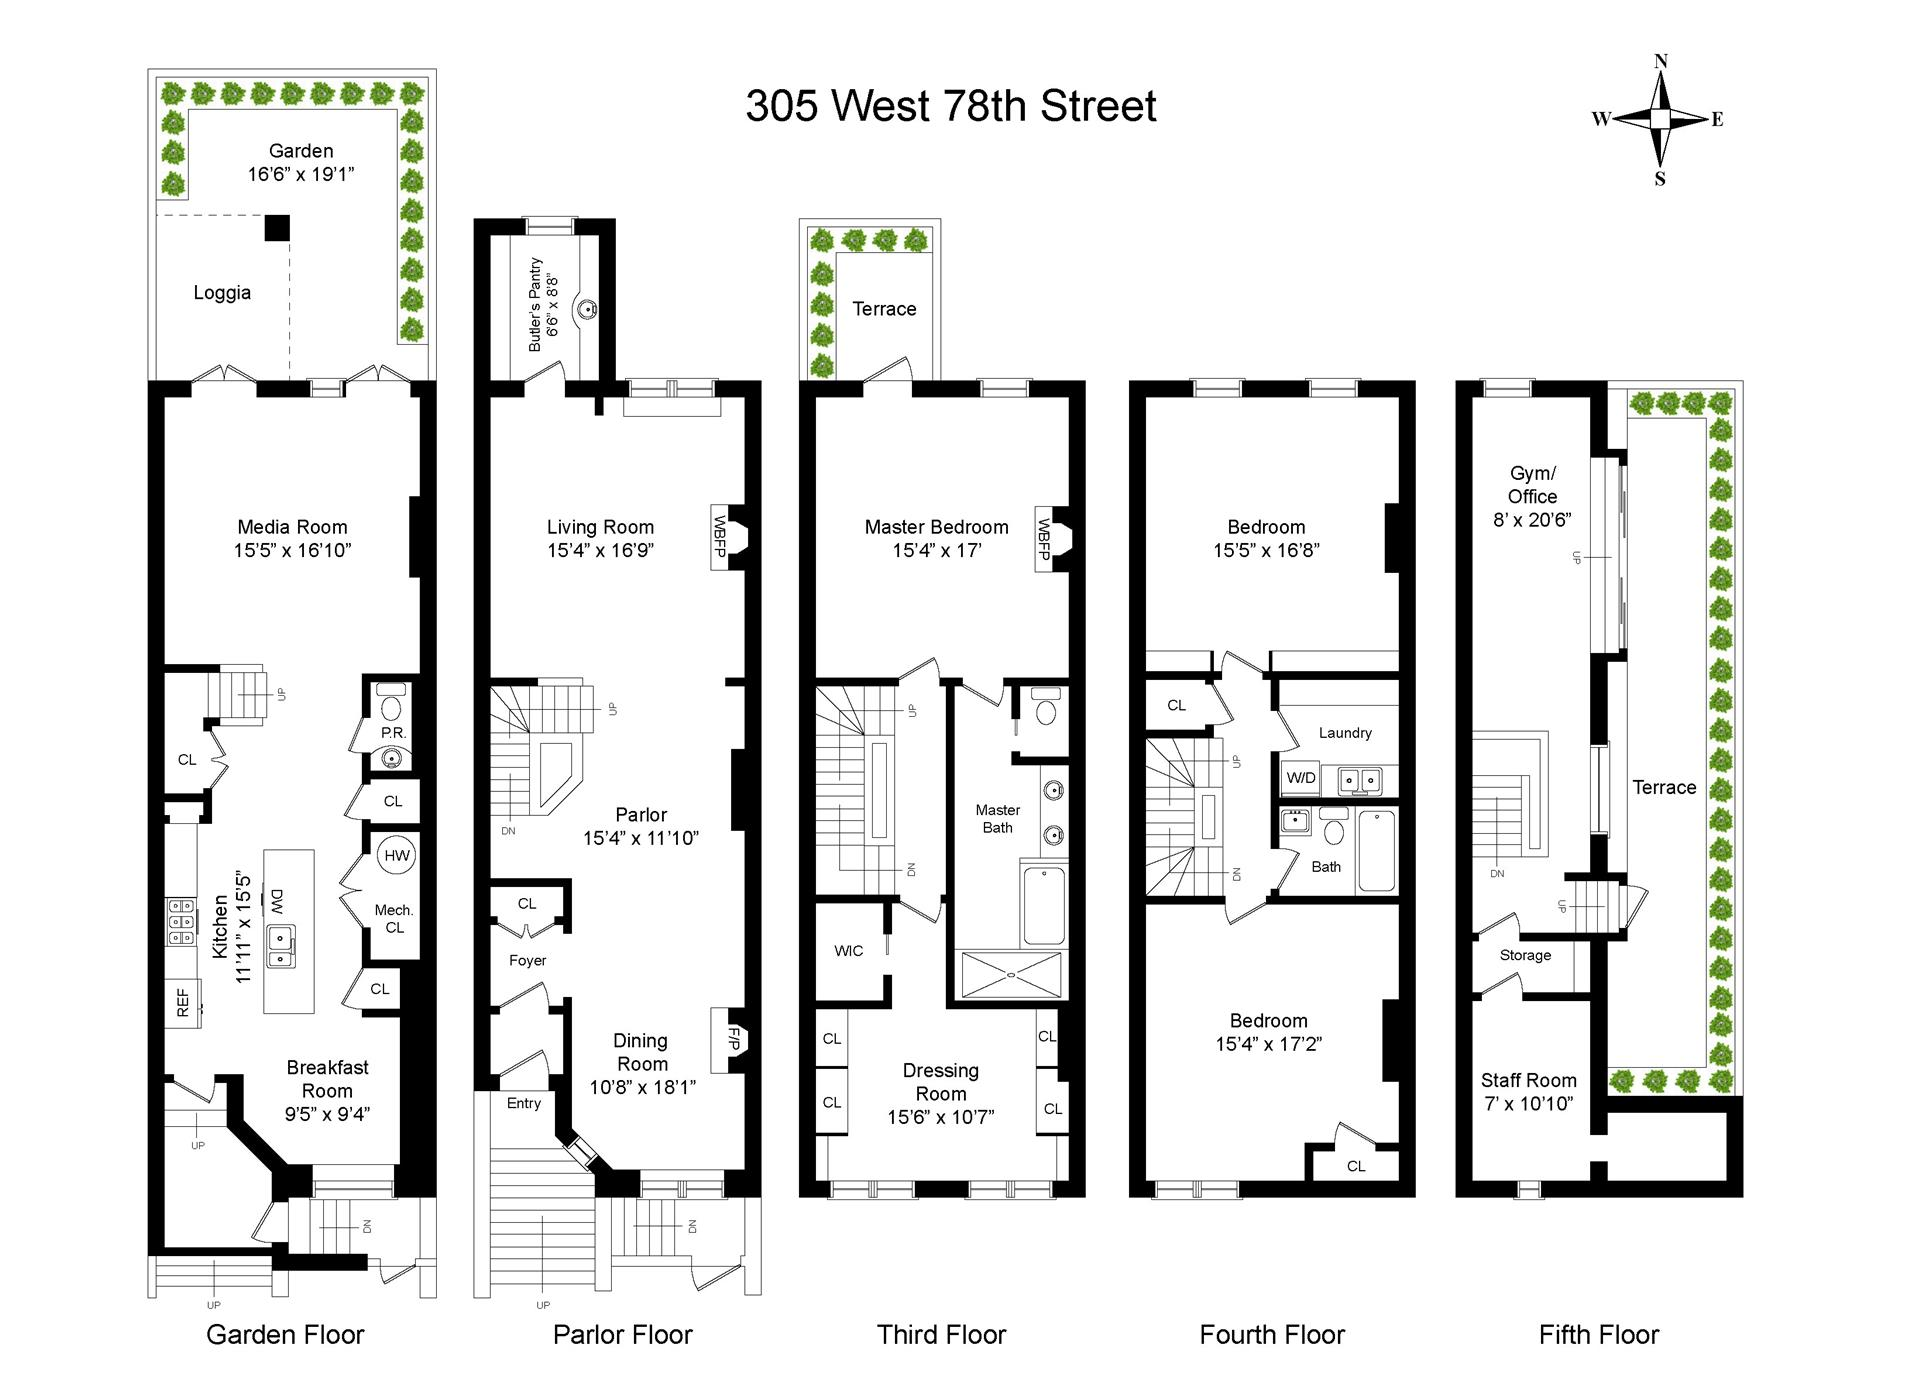 Floor plan of 305 West 78th St - Upper West Side, New York